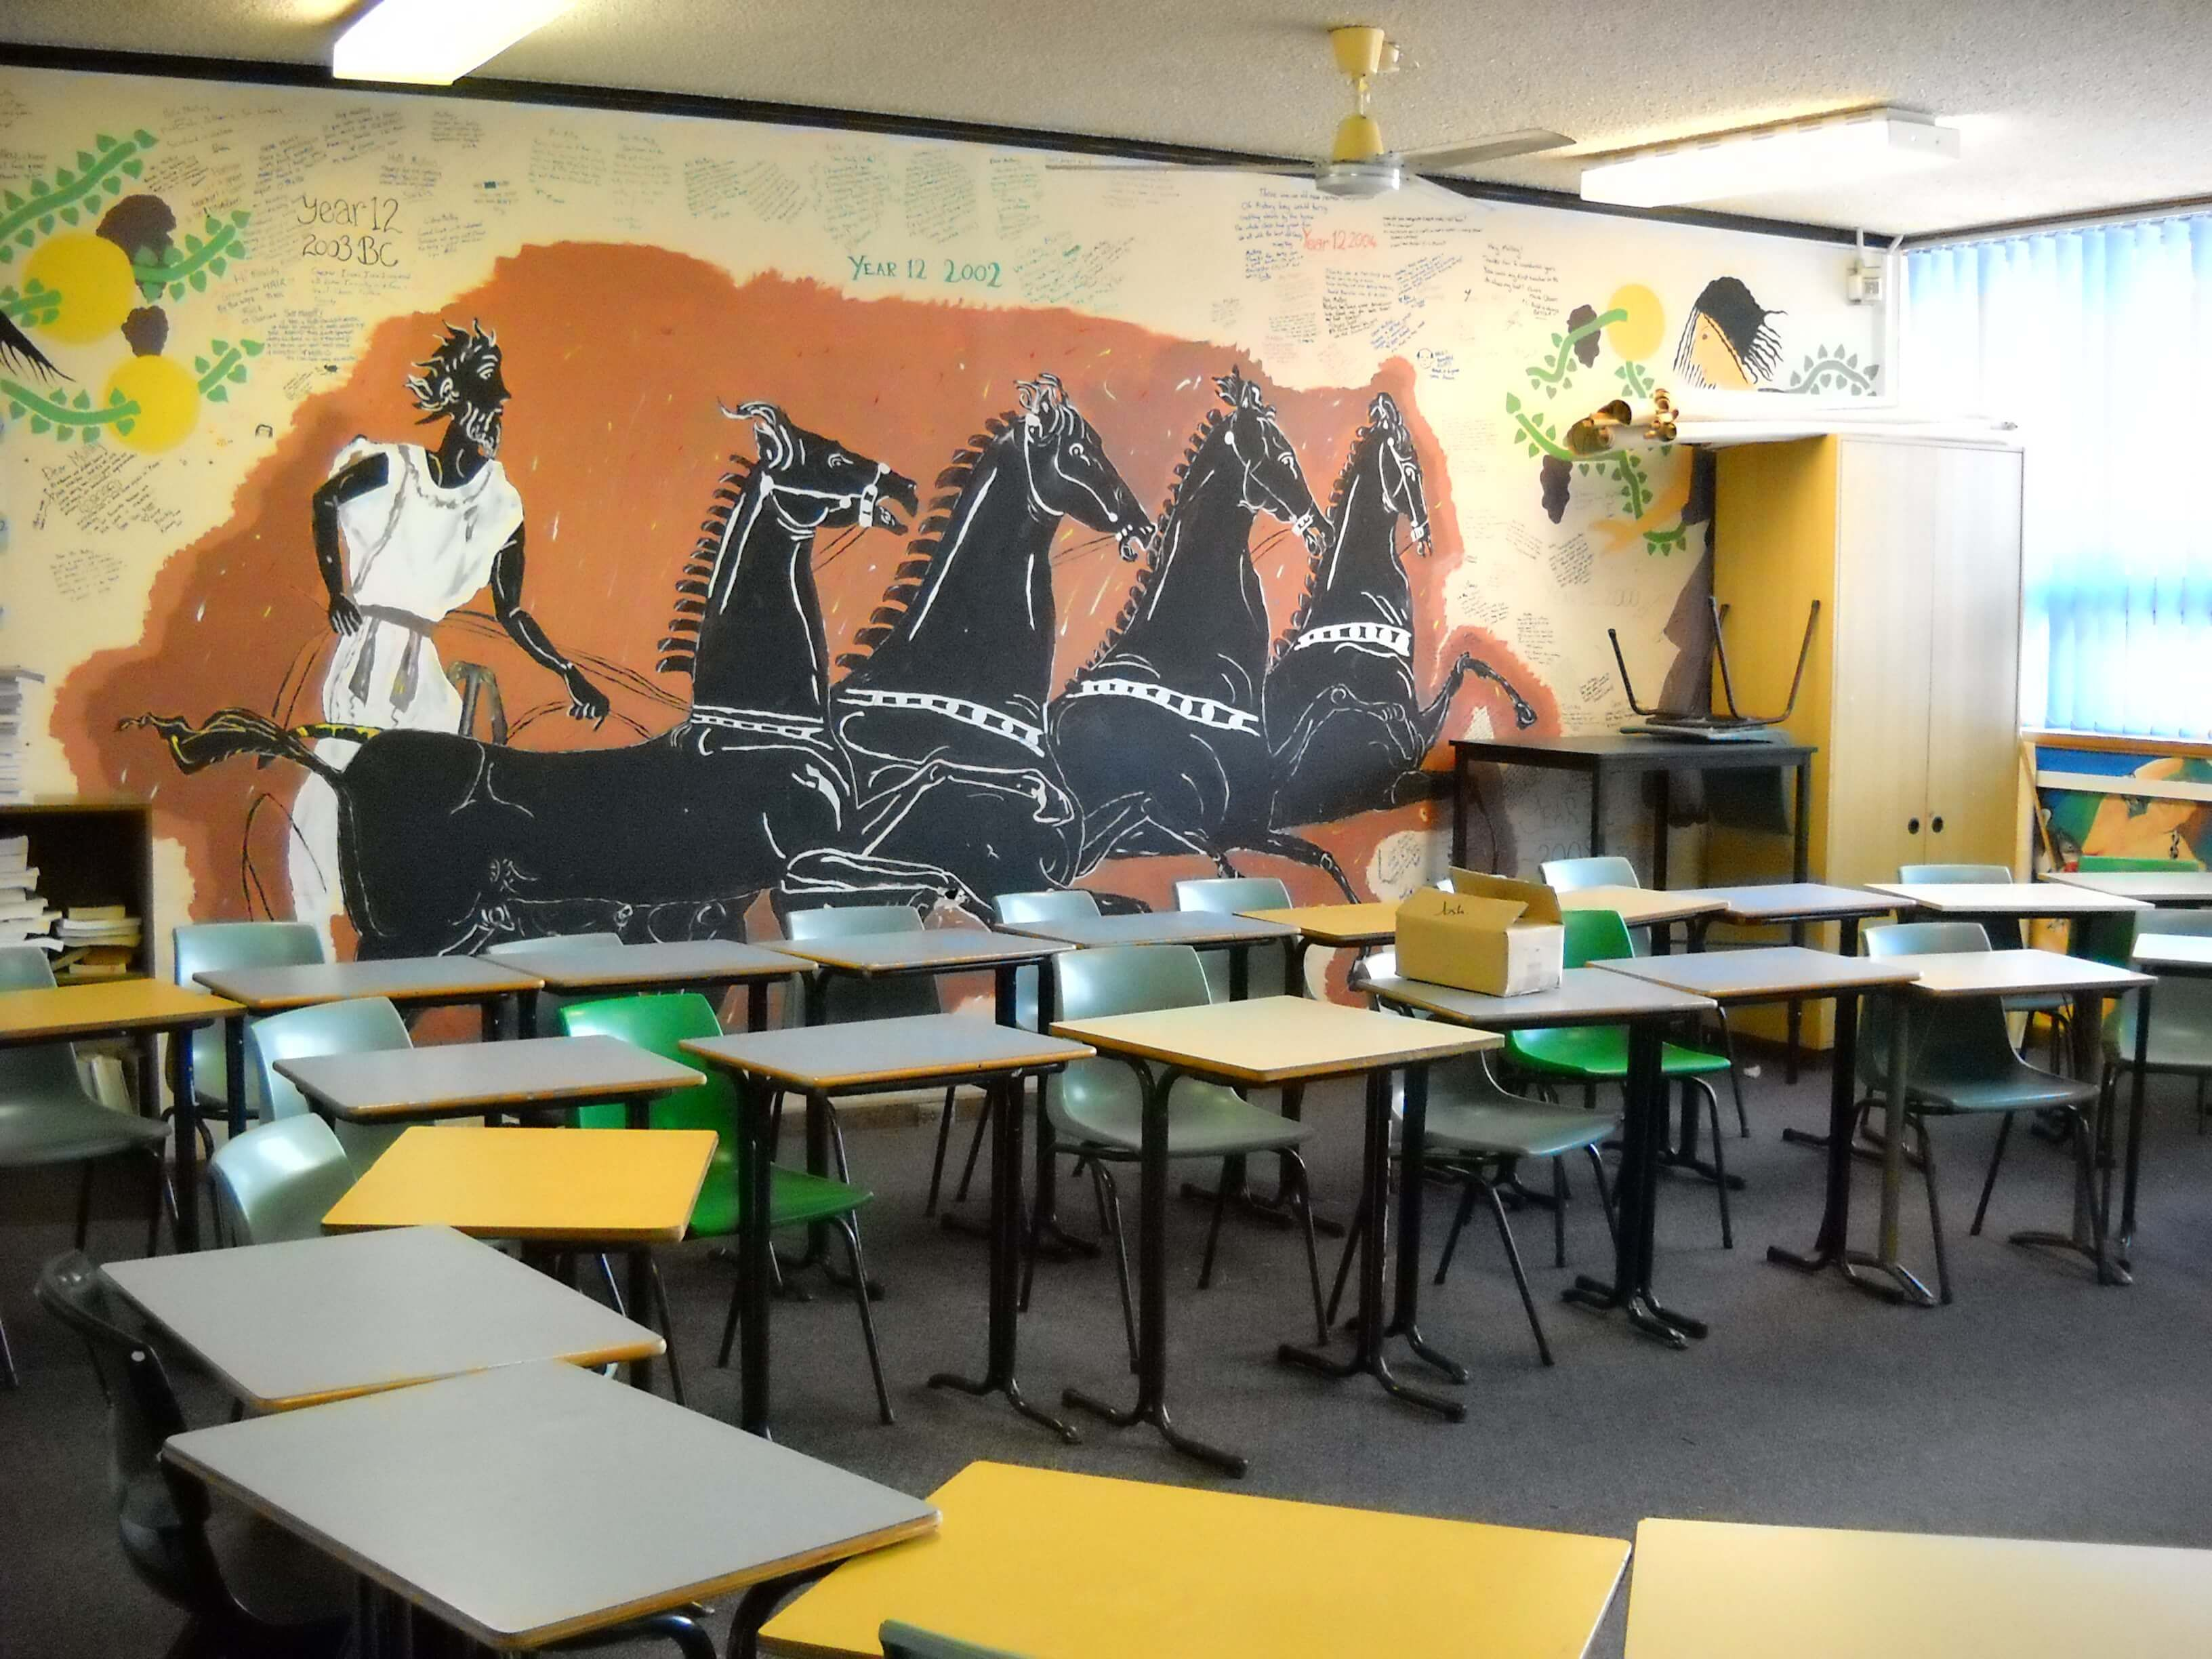 Amazing Architecture Of Educational Classrooms